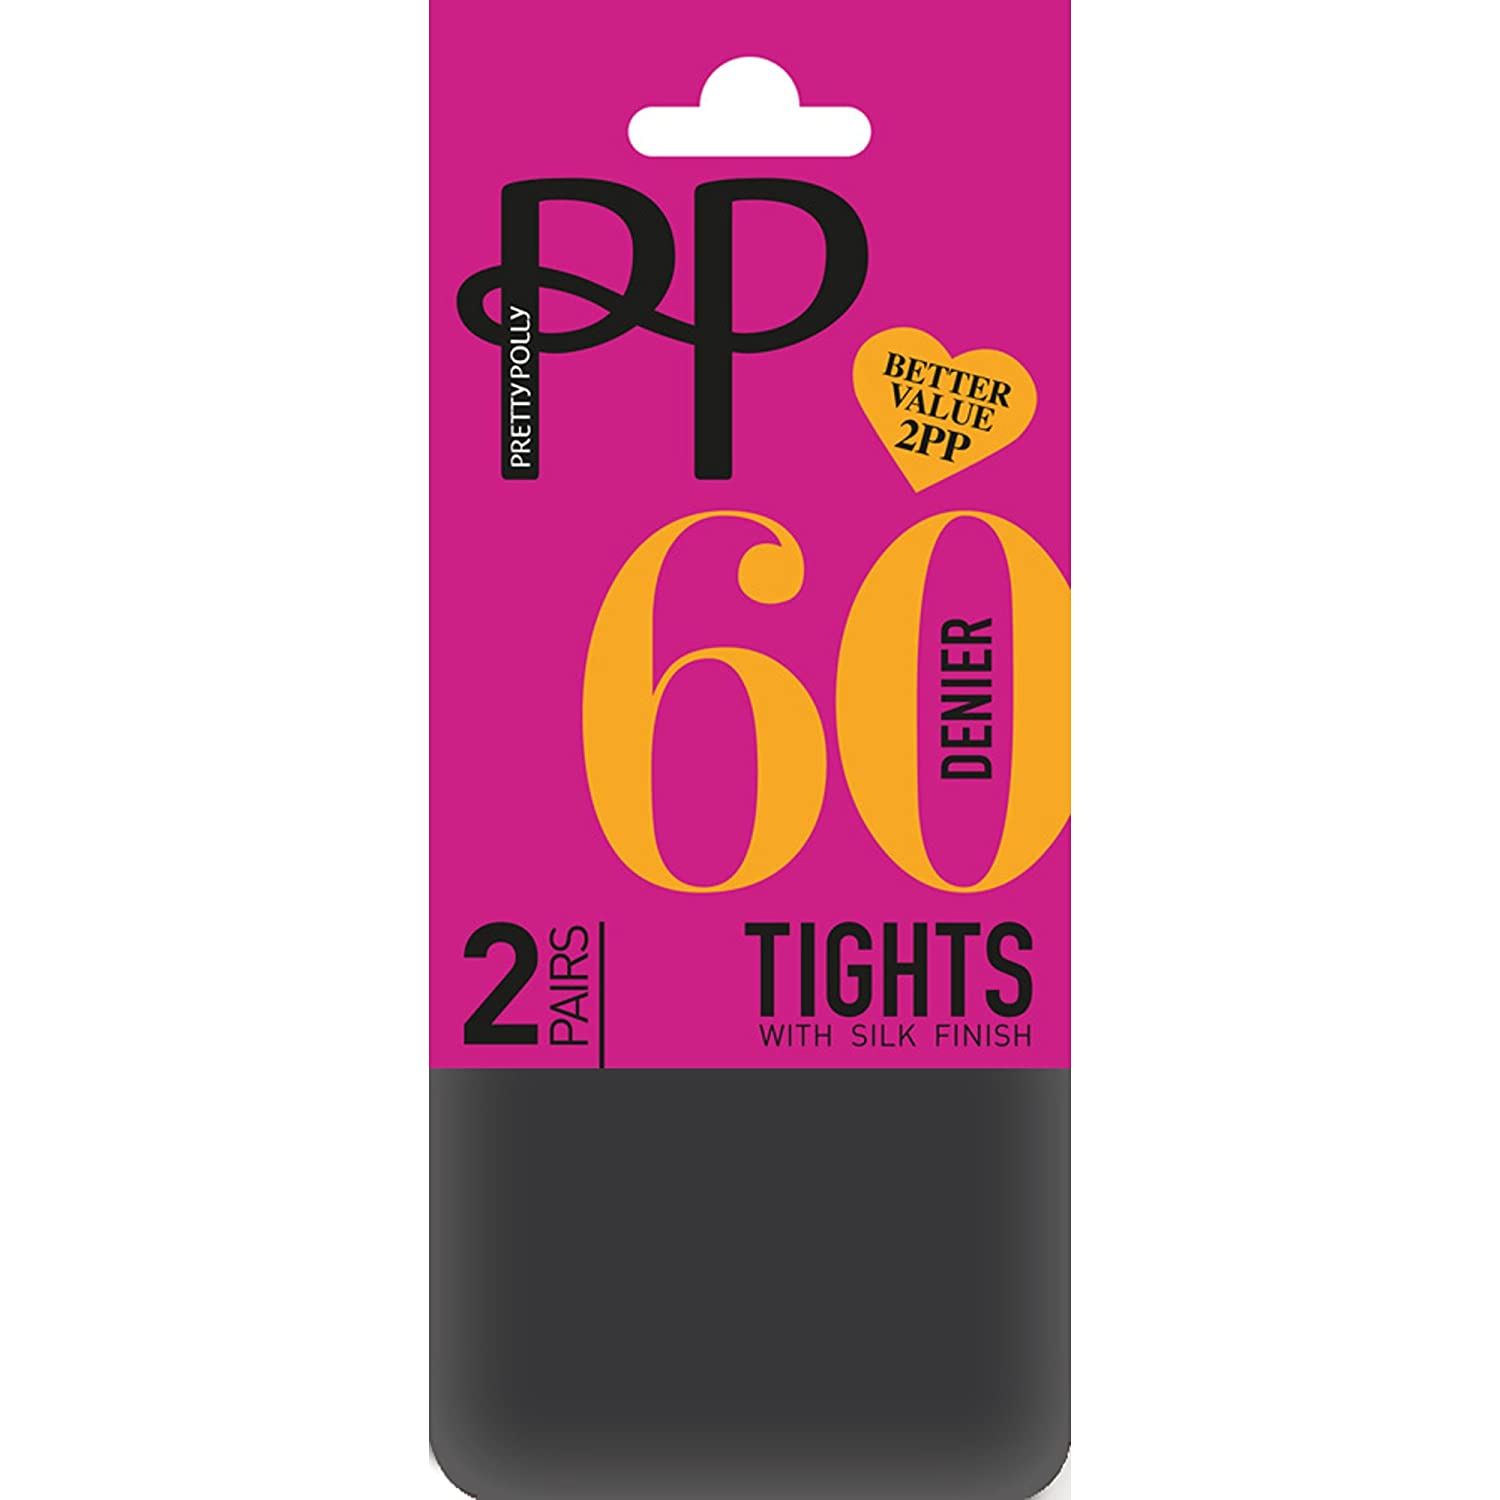 Pretty Polly 60 Denier Opaque Tights with Silk Finish (2 Pair Pack)